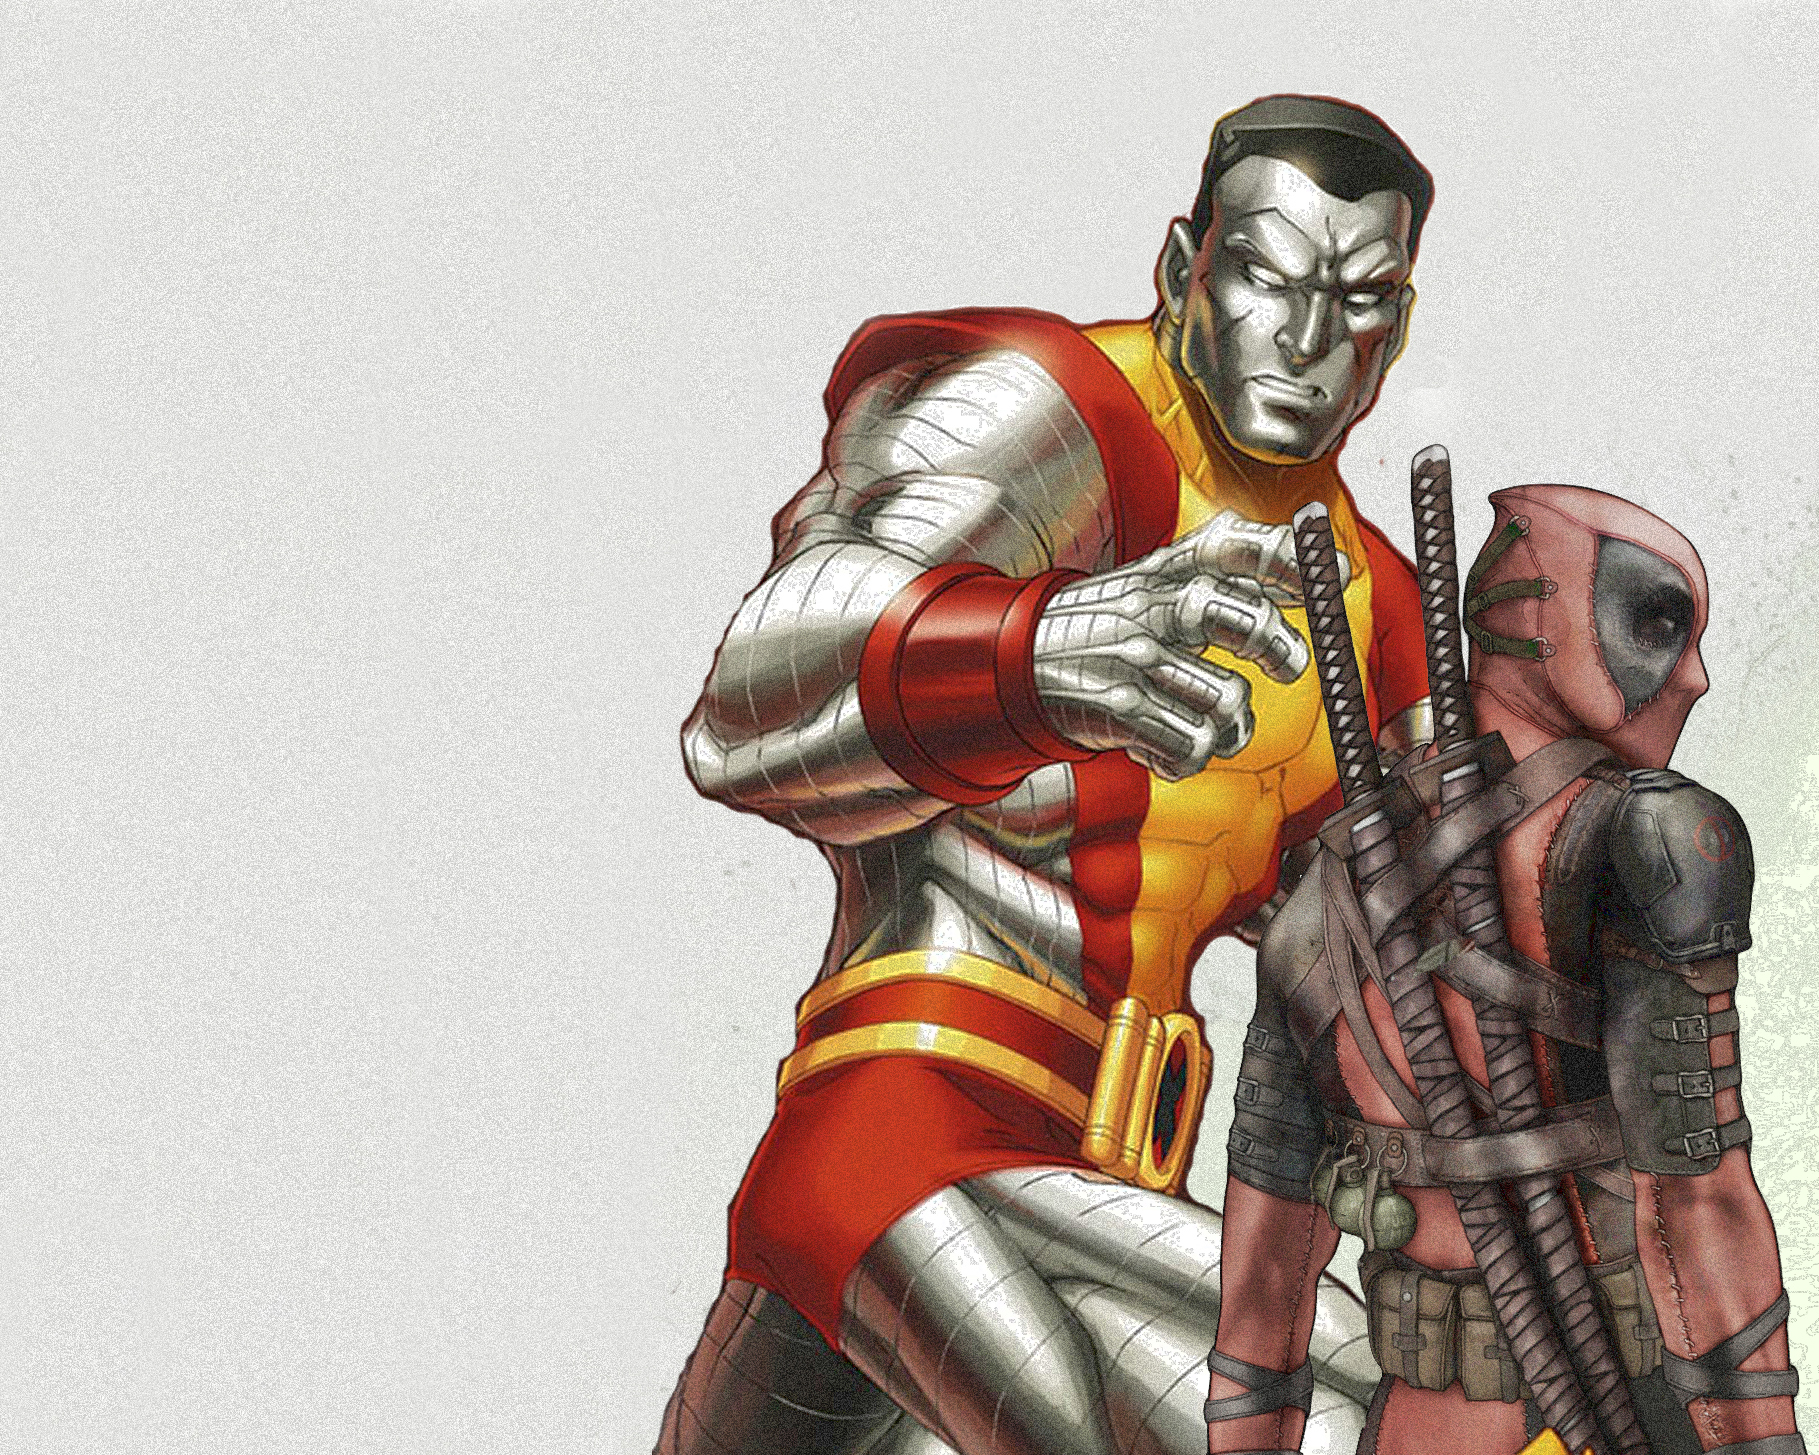 colossus amp deadpool duping HD Wallpaper